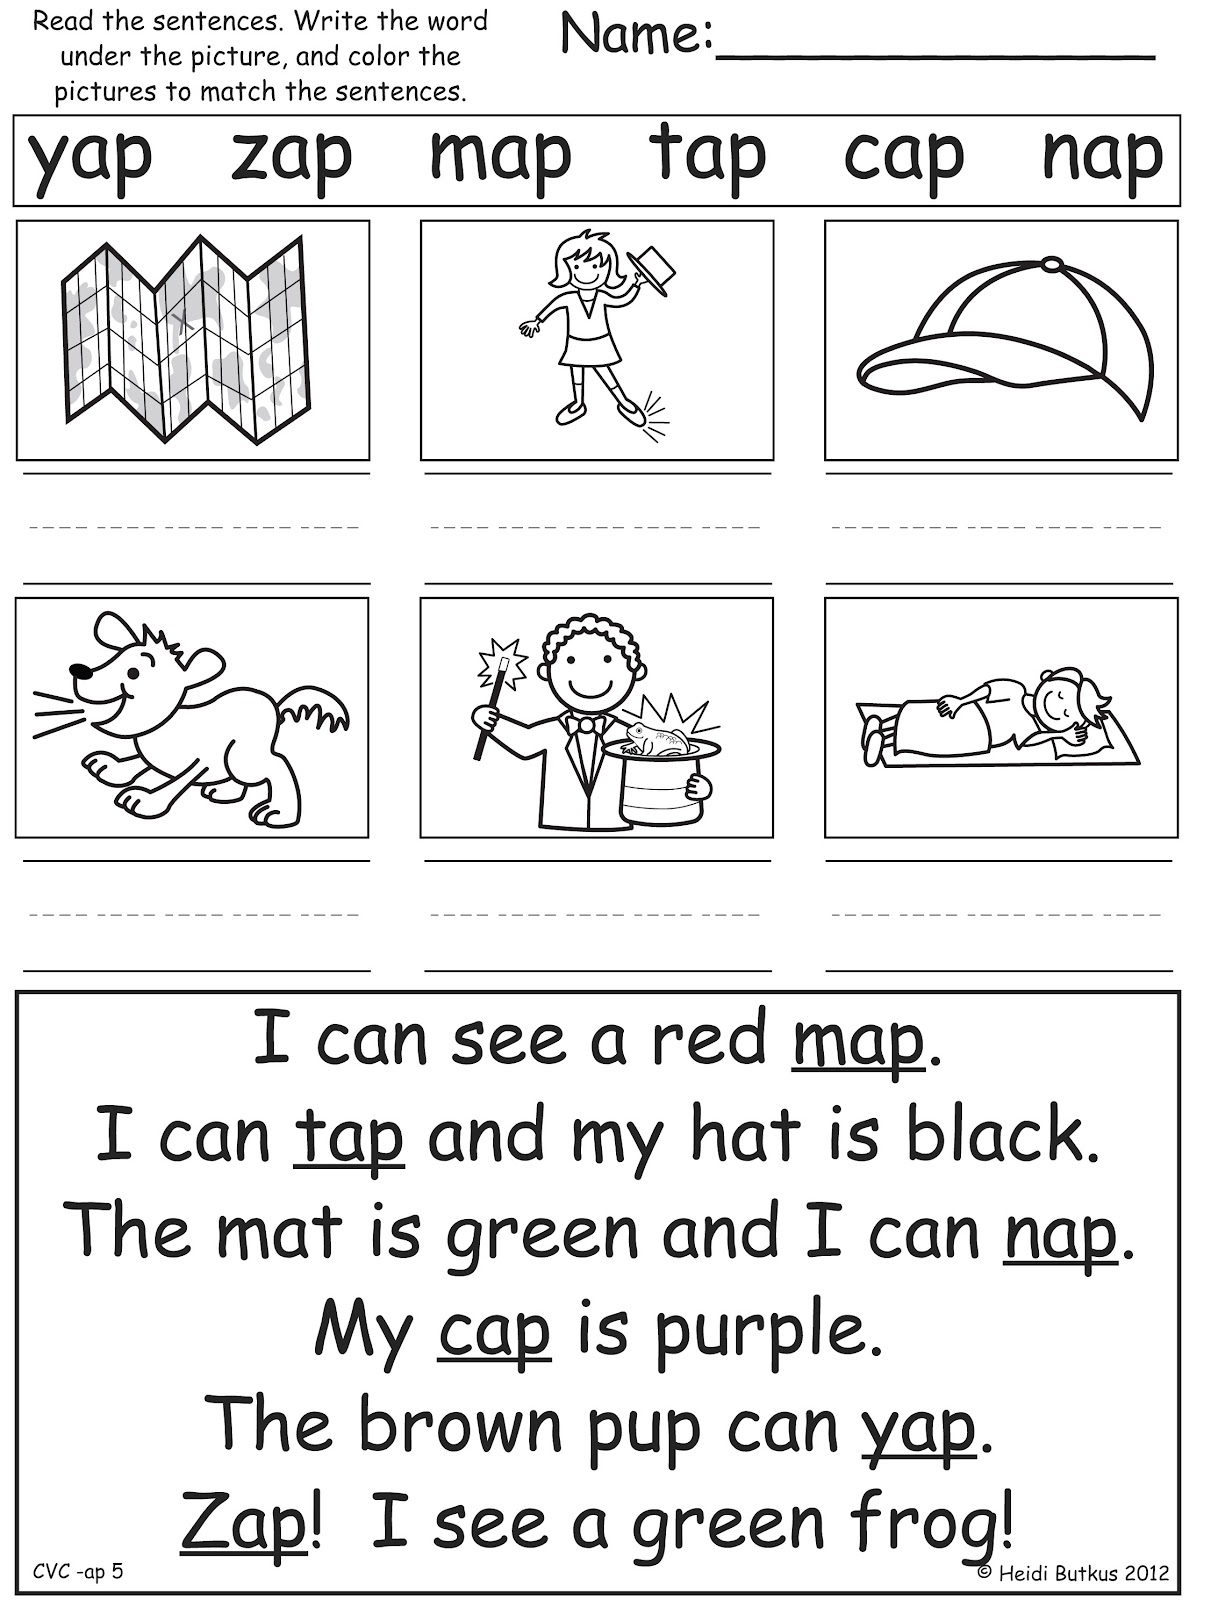 Worksheets Cvc Worksheets For Kindergarten beginning and ending sounds kinderland collaborative kindergarten language arts this is the opposite of other worksheet has them put first last letter sight words to ma